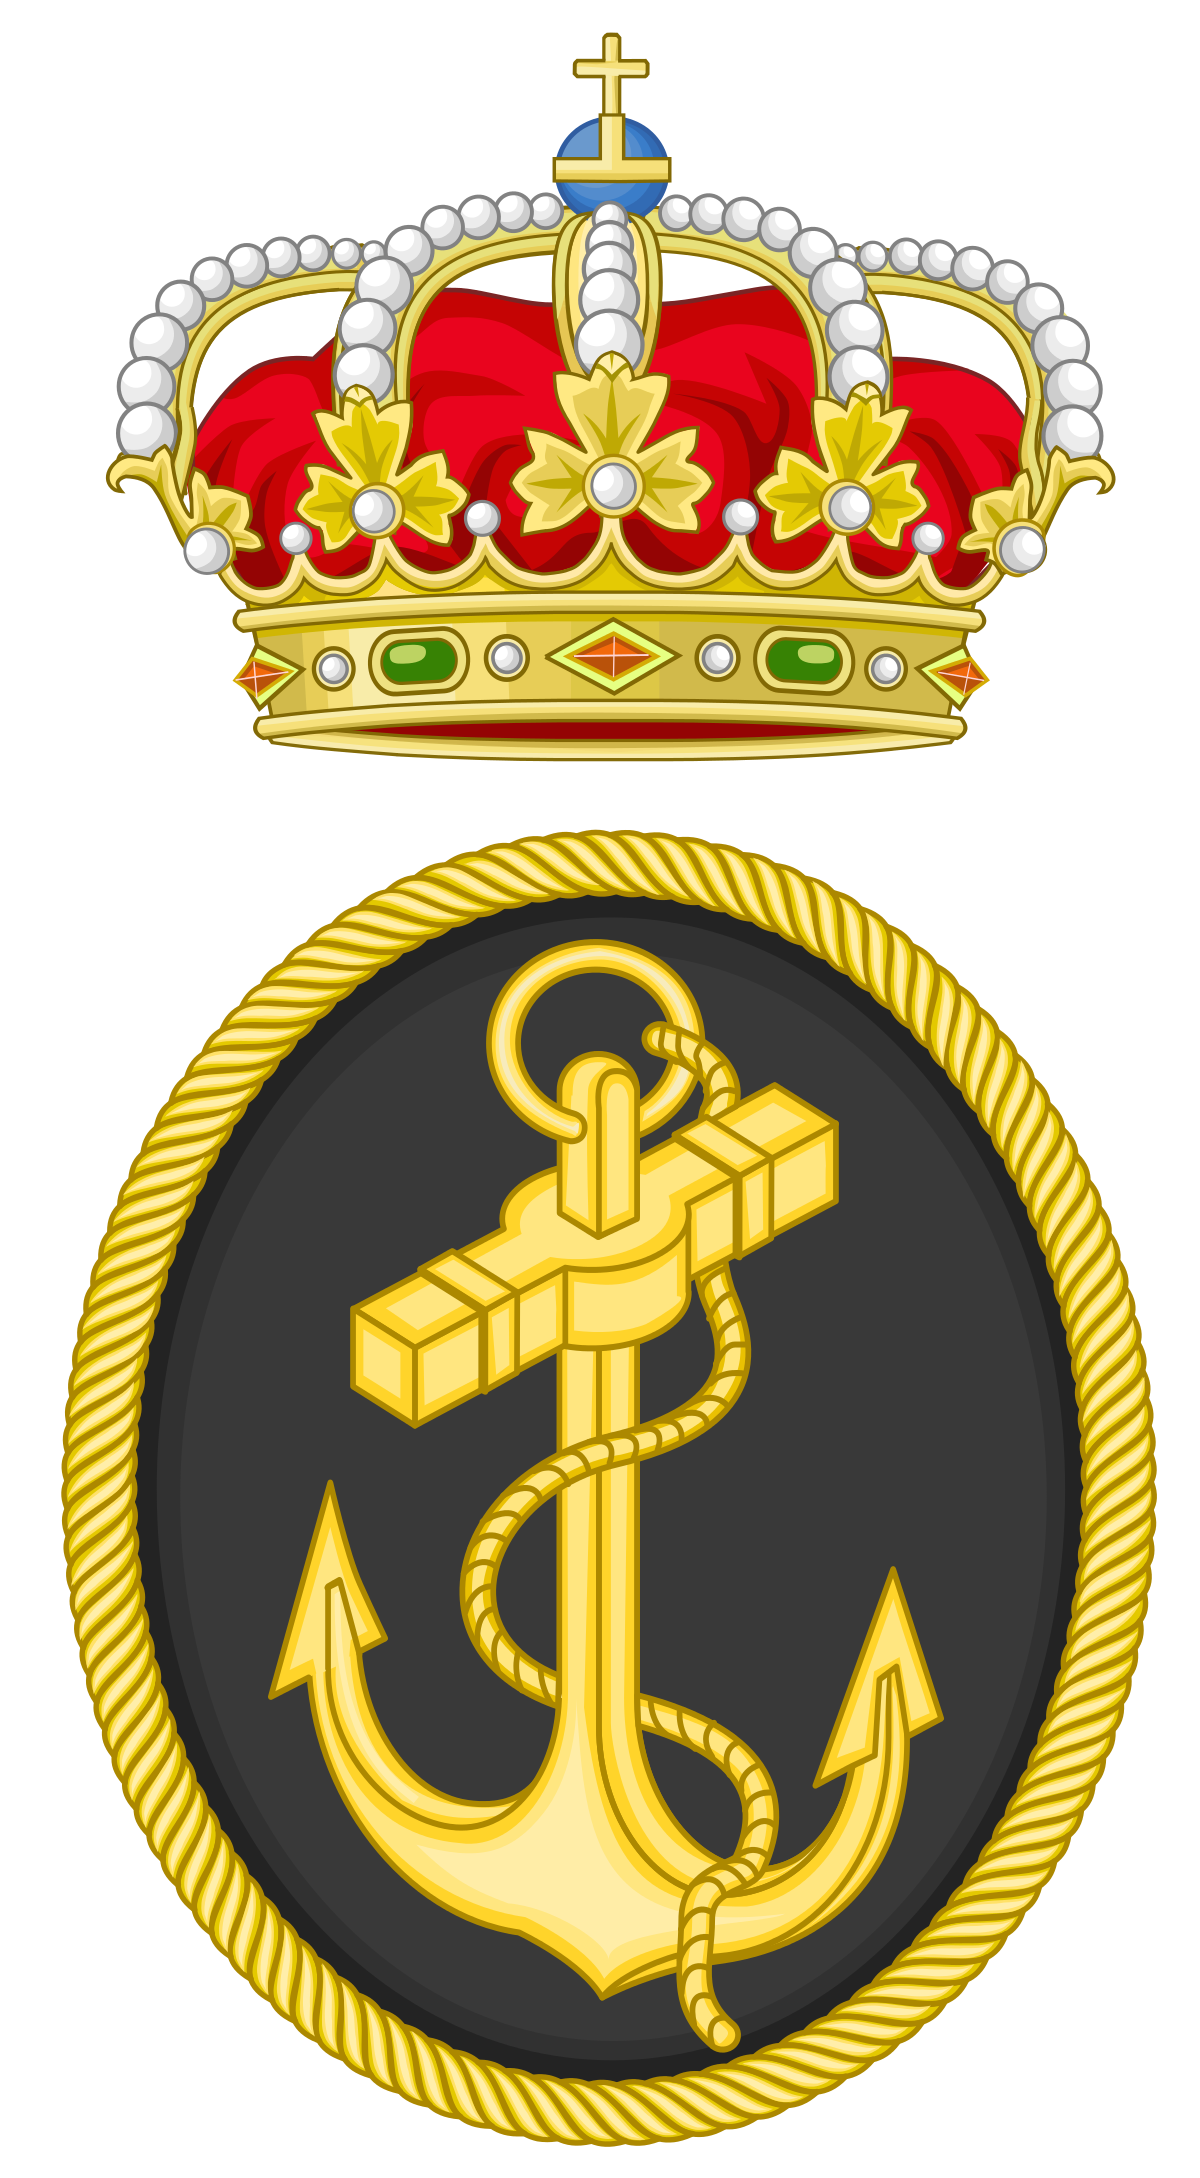 Spanish wikipedia . Clipart anchor chief navy